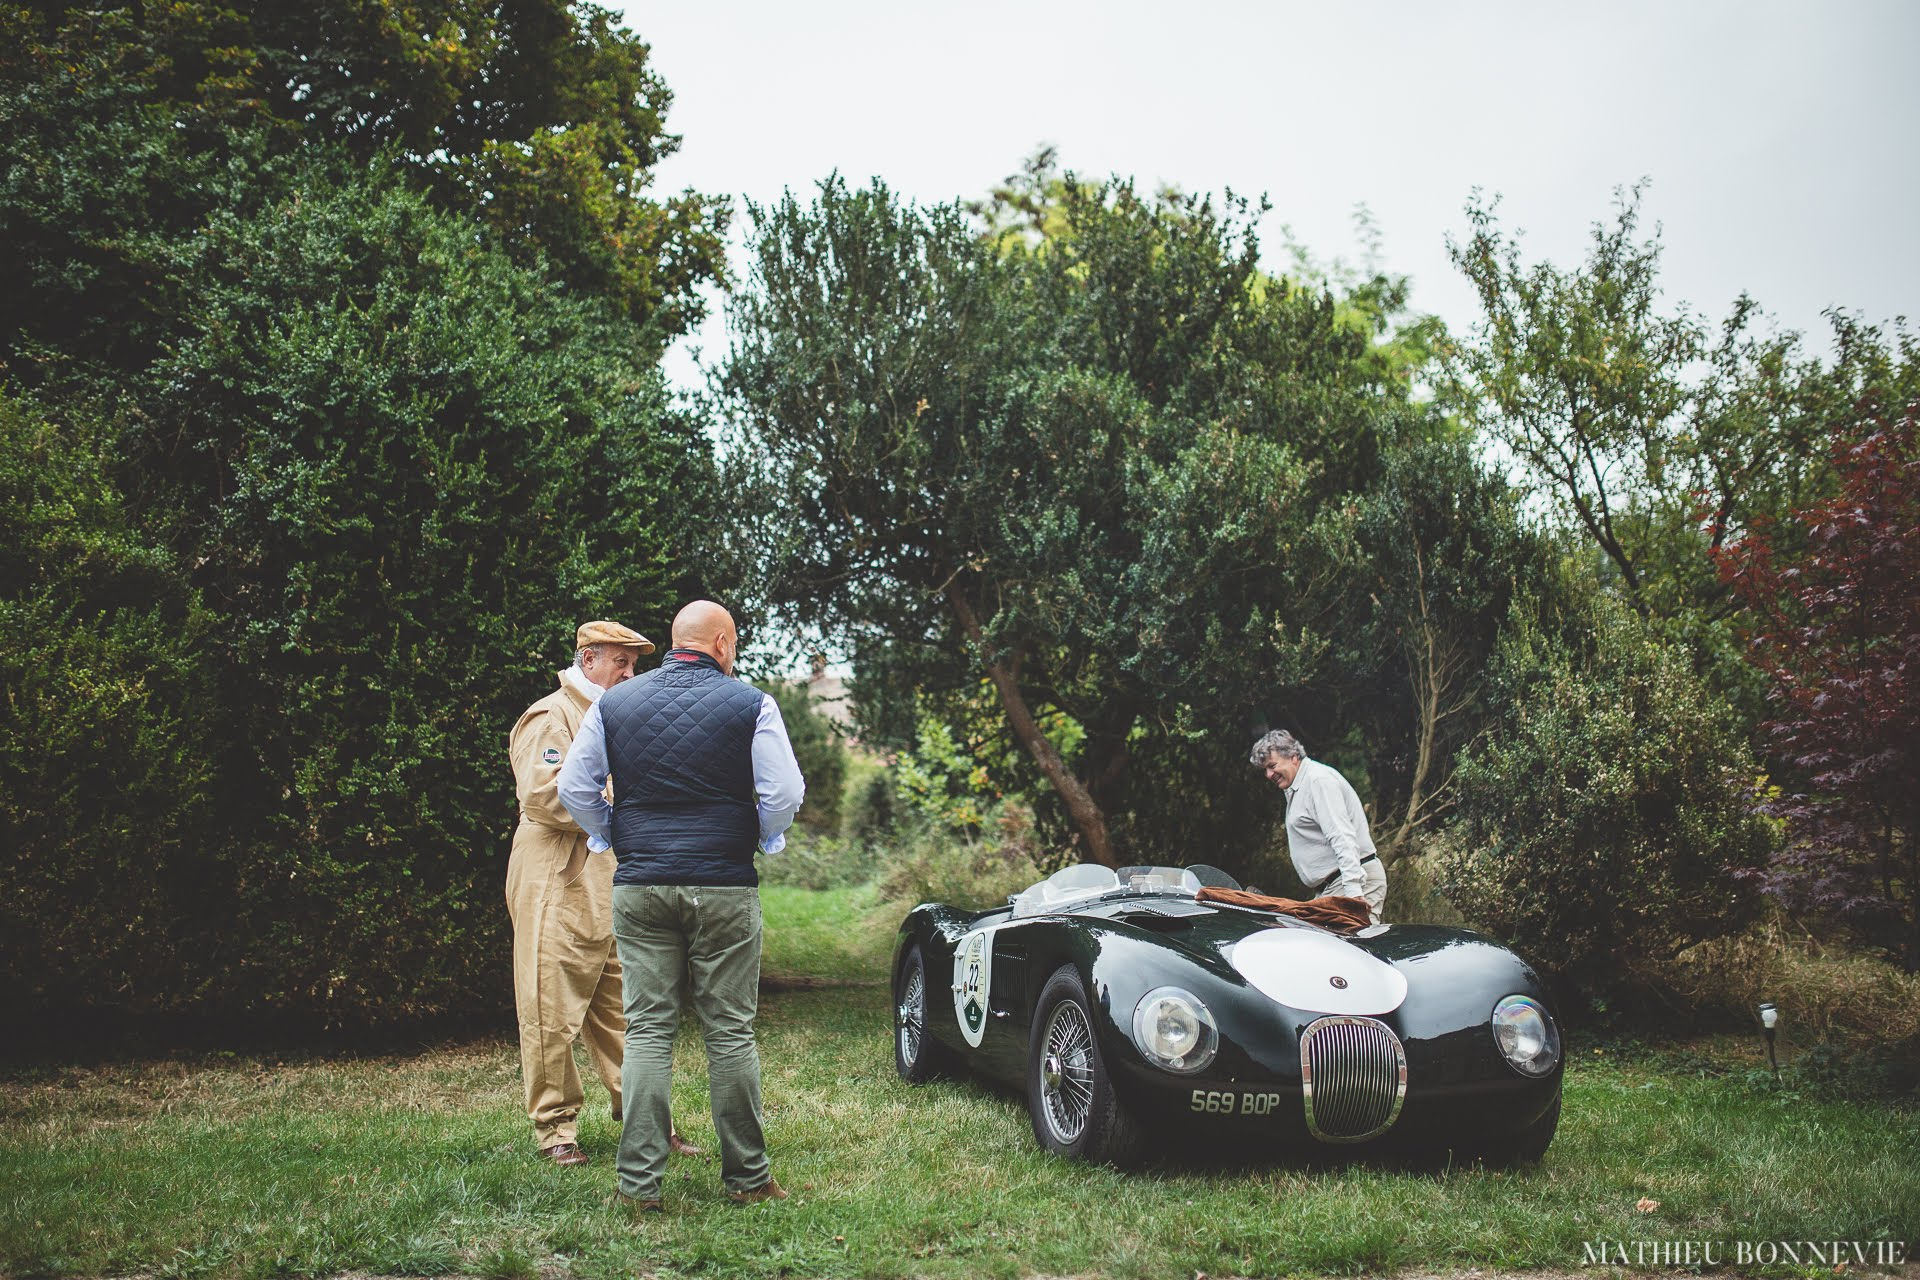 85-goodwoodrevival18-00506-copyright-Mathieu-Bonnevie-1920